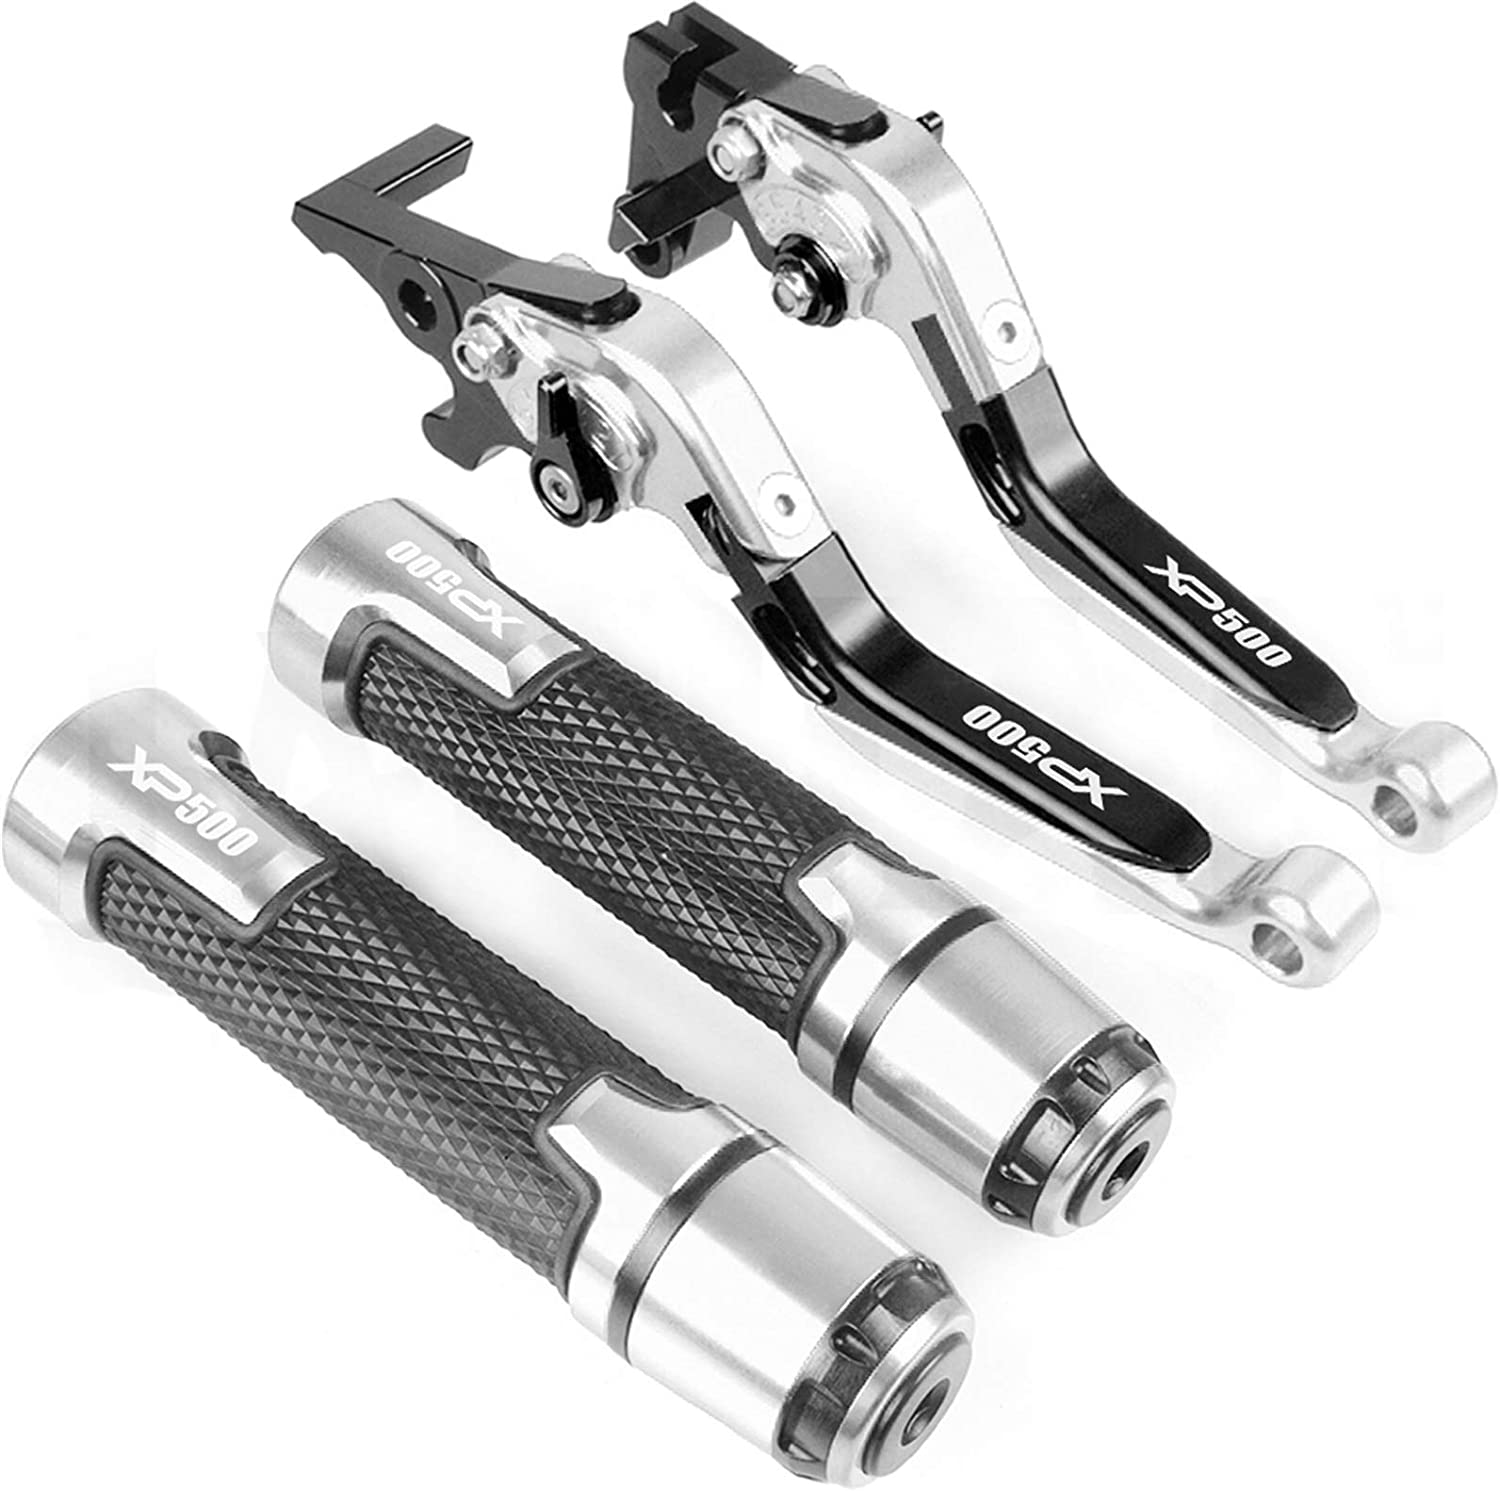 Motorcycle Clutch Grip Set For Max 49% shipfree OFF Yamaha XP-500 2011 XP500 2010 ABS